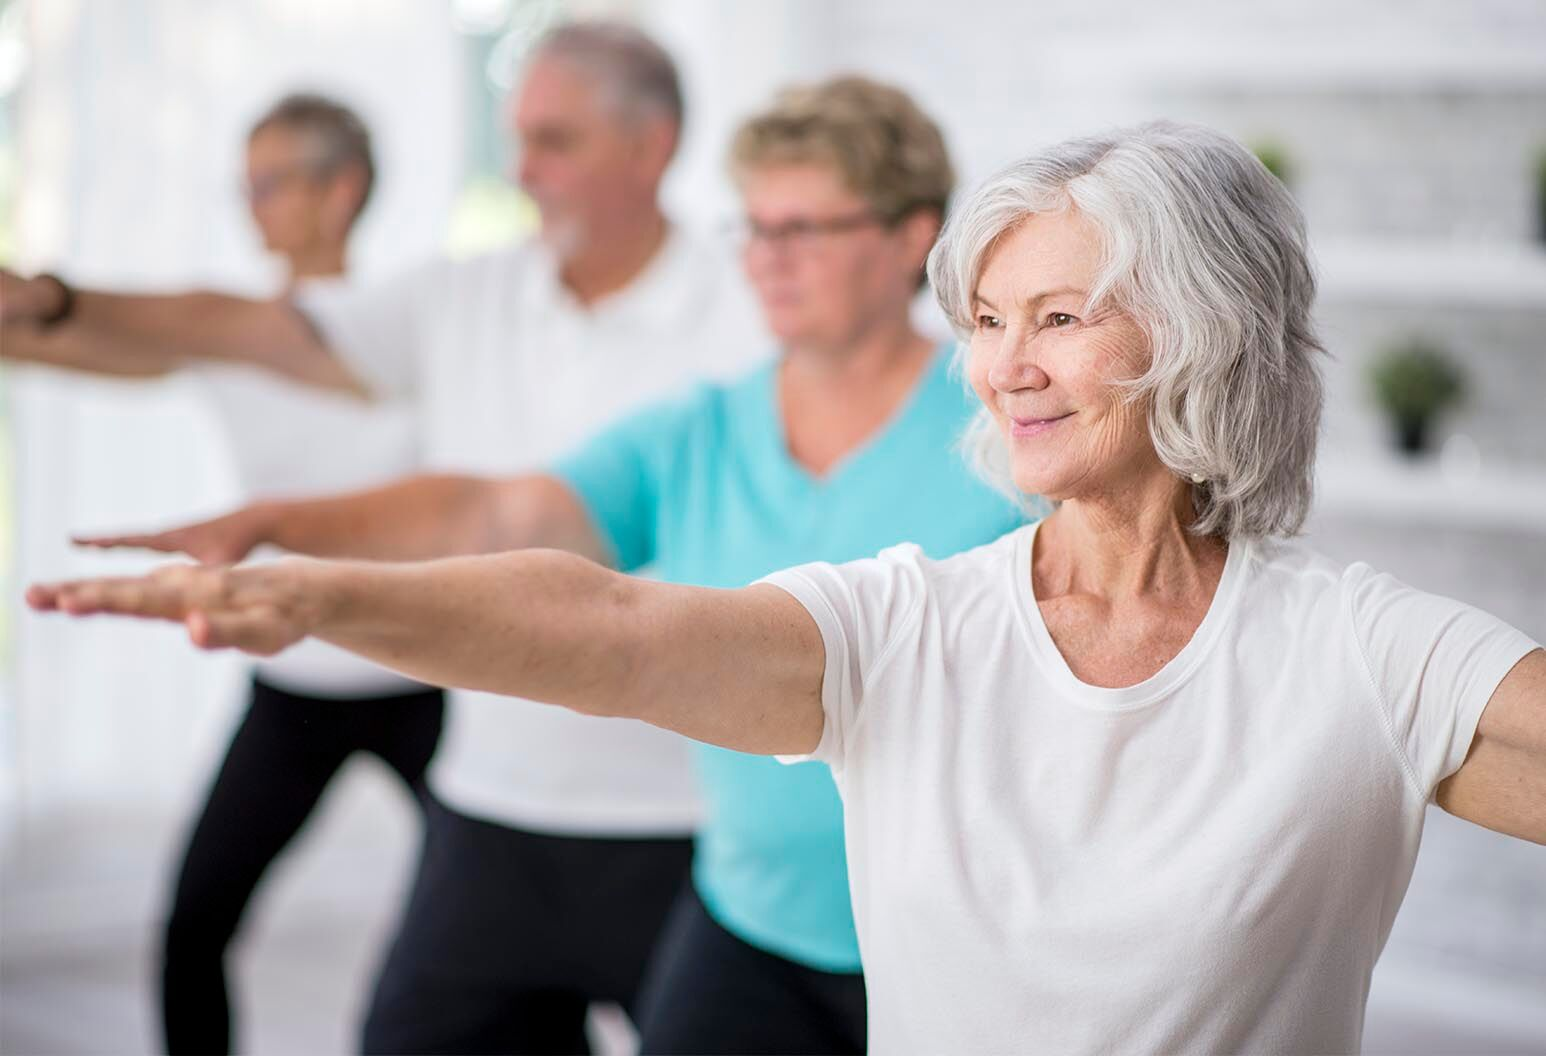 A multi-ethnic group of adult men and women are indoors in a fitness studio. They are wearing casual clothing while at a Tai Chi class. A senior Caucasian woman is smiling while stretching out her arms.